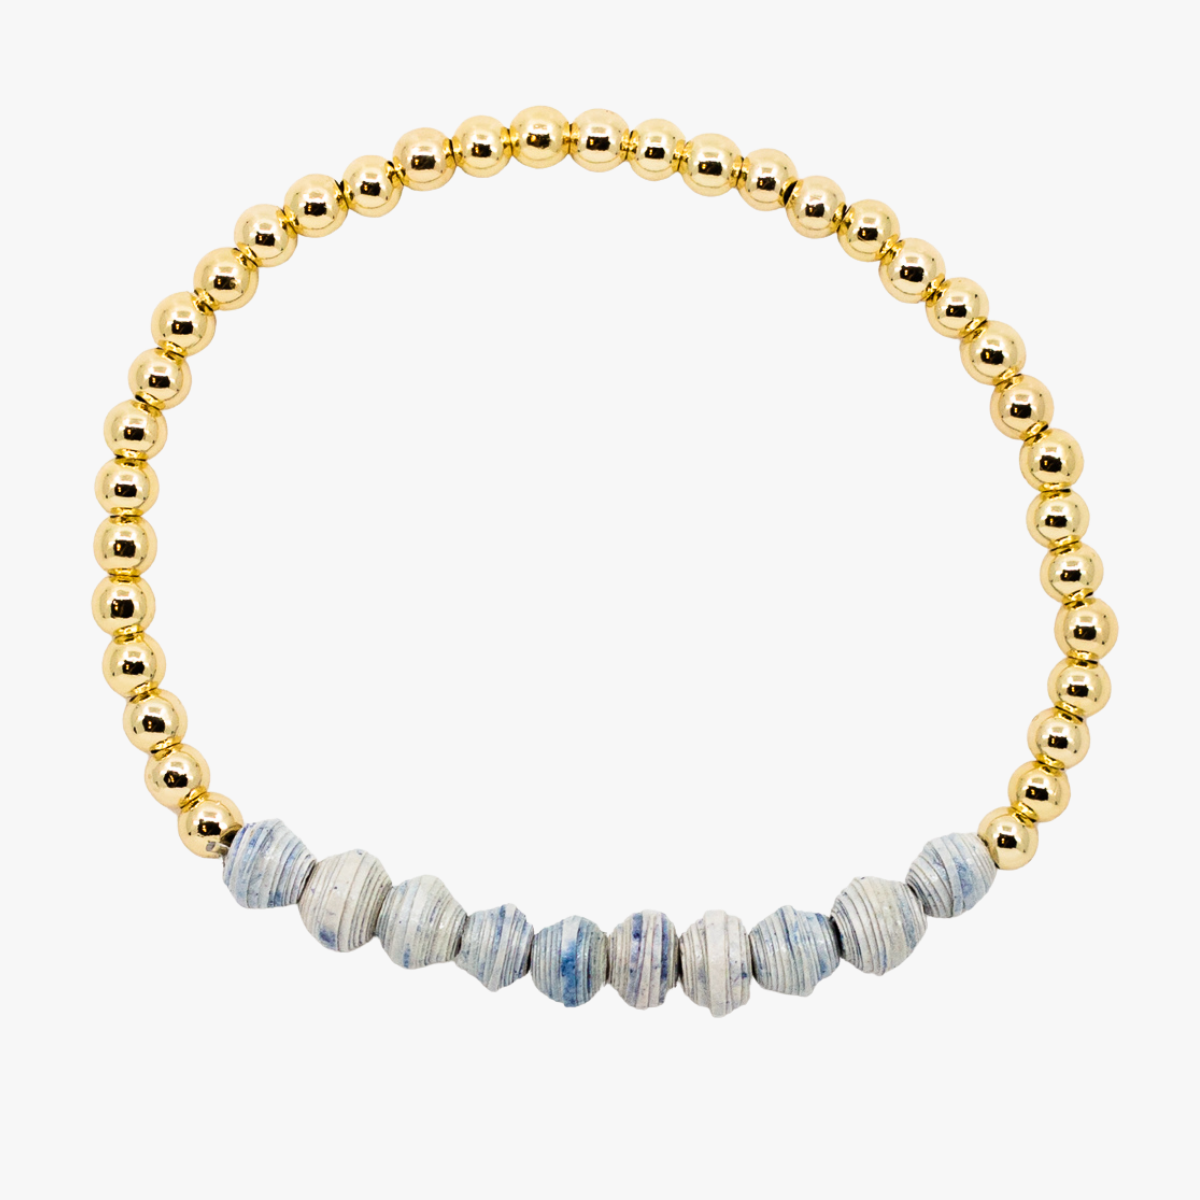 Ethically made bracelet with 18k gold beads and blue paper beads